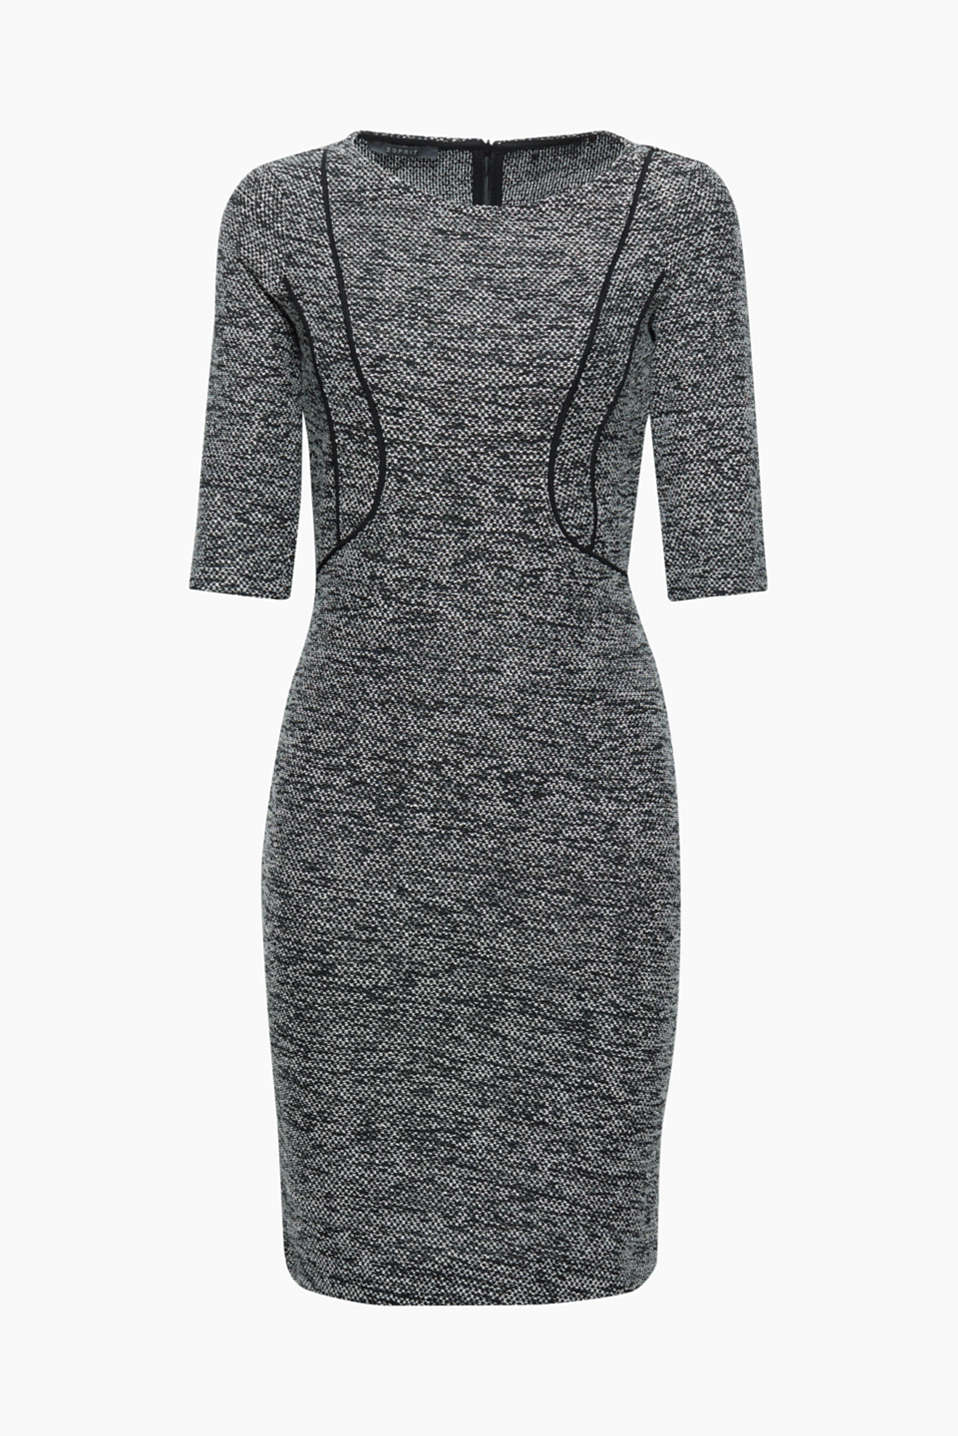 This jersey dress in a textured tweed look with subtle glitter effects is chic and comfortable!